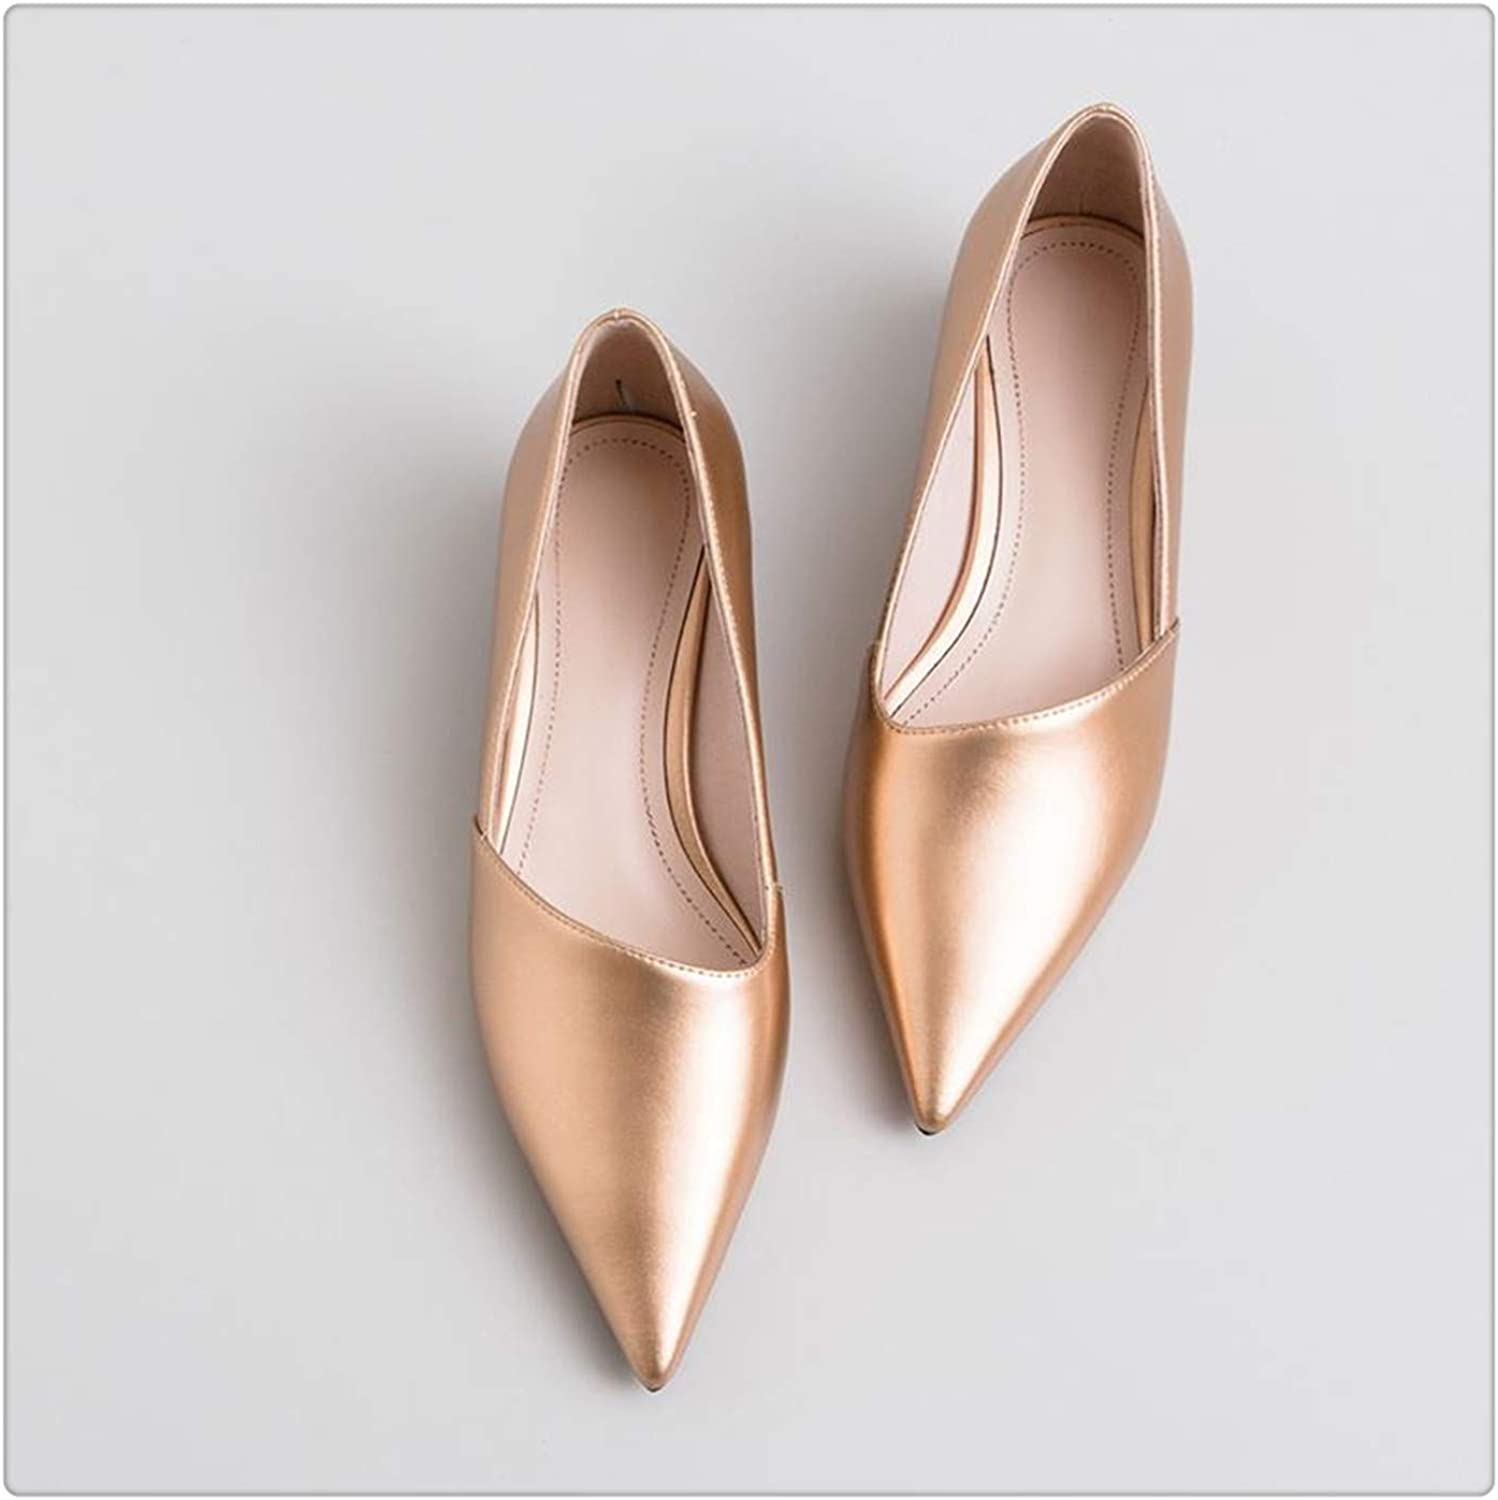 ZXCVB& Fashion Pointed Toe Thick Heel Women shoes Brand high Heels Party Women shoes Spring Office Ladies shoes Size 33-43 gold 9